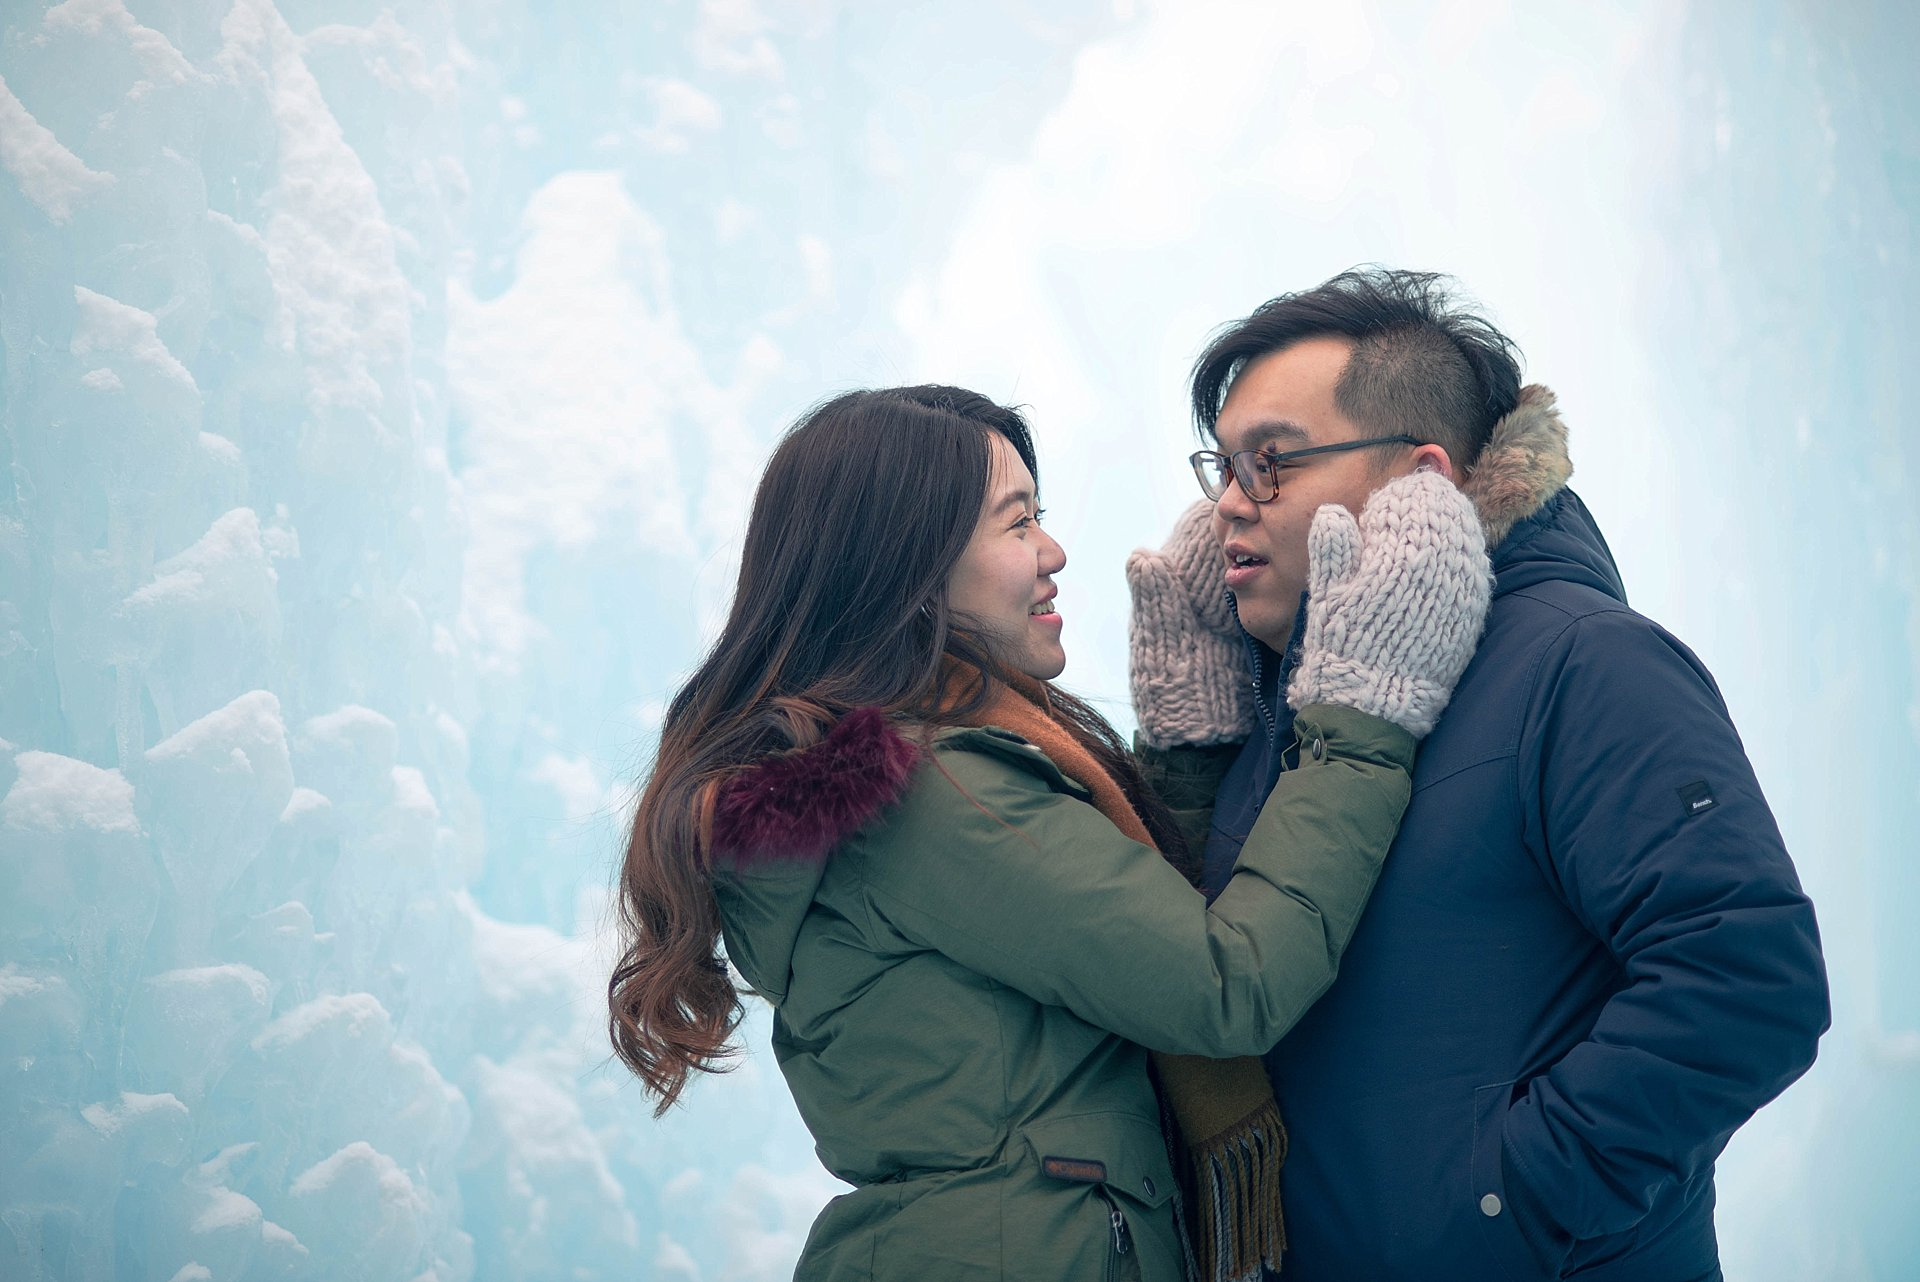 VJ-Ice-castles-engagement-photography_0000